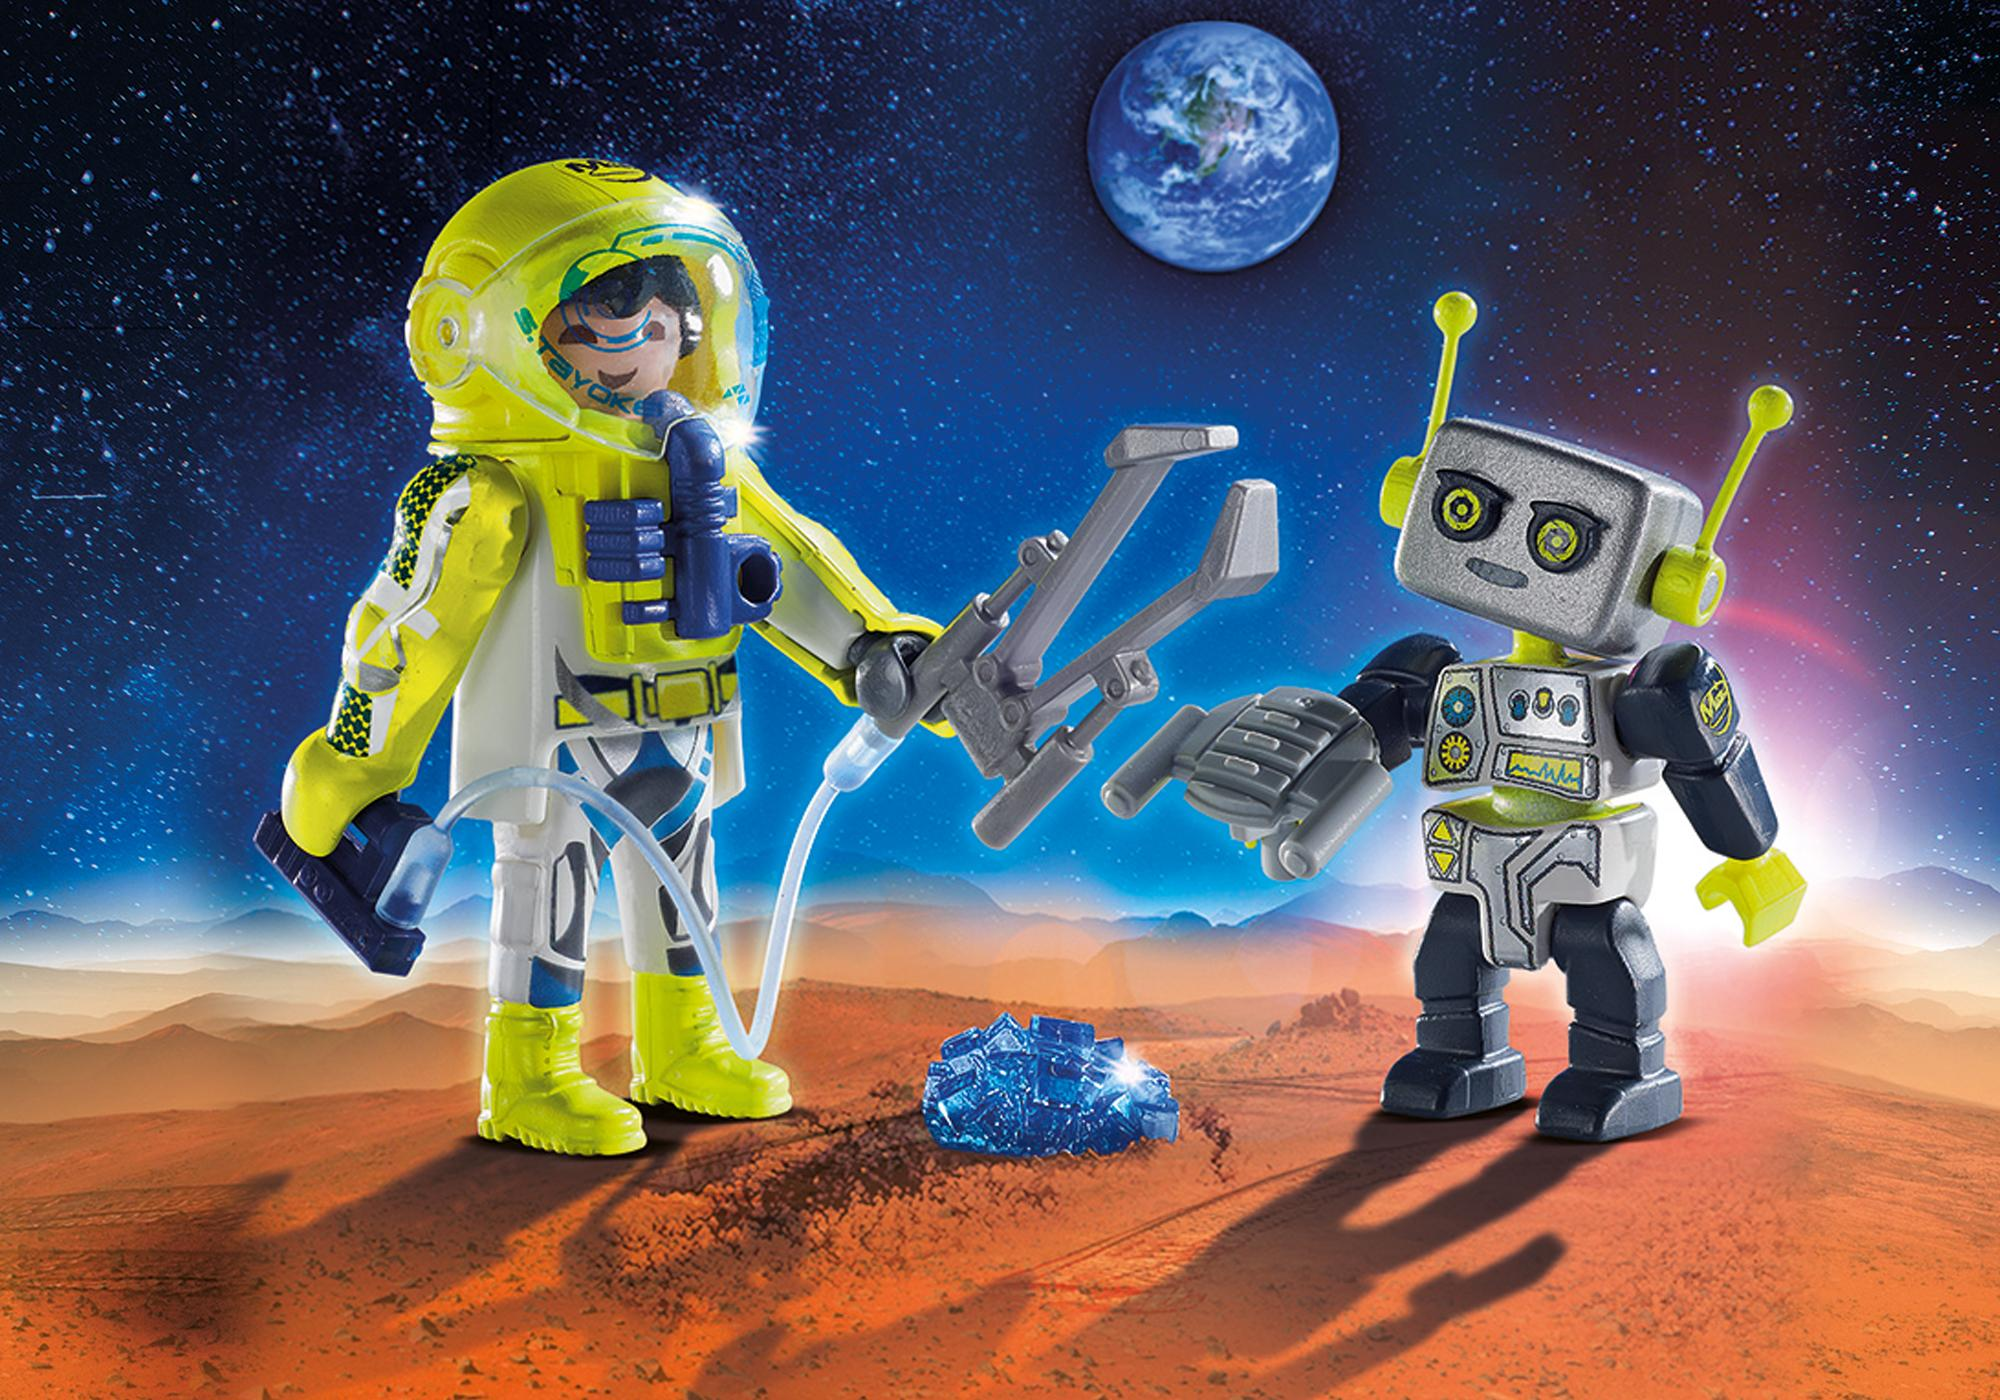 9492_product_detail/Duo Pack Astronaut und Roboter